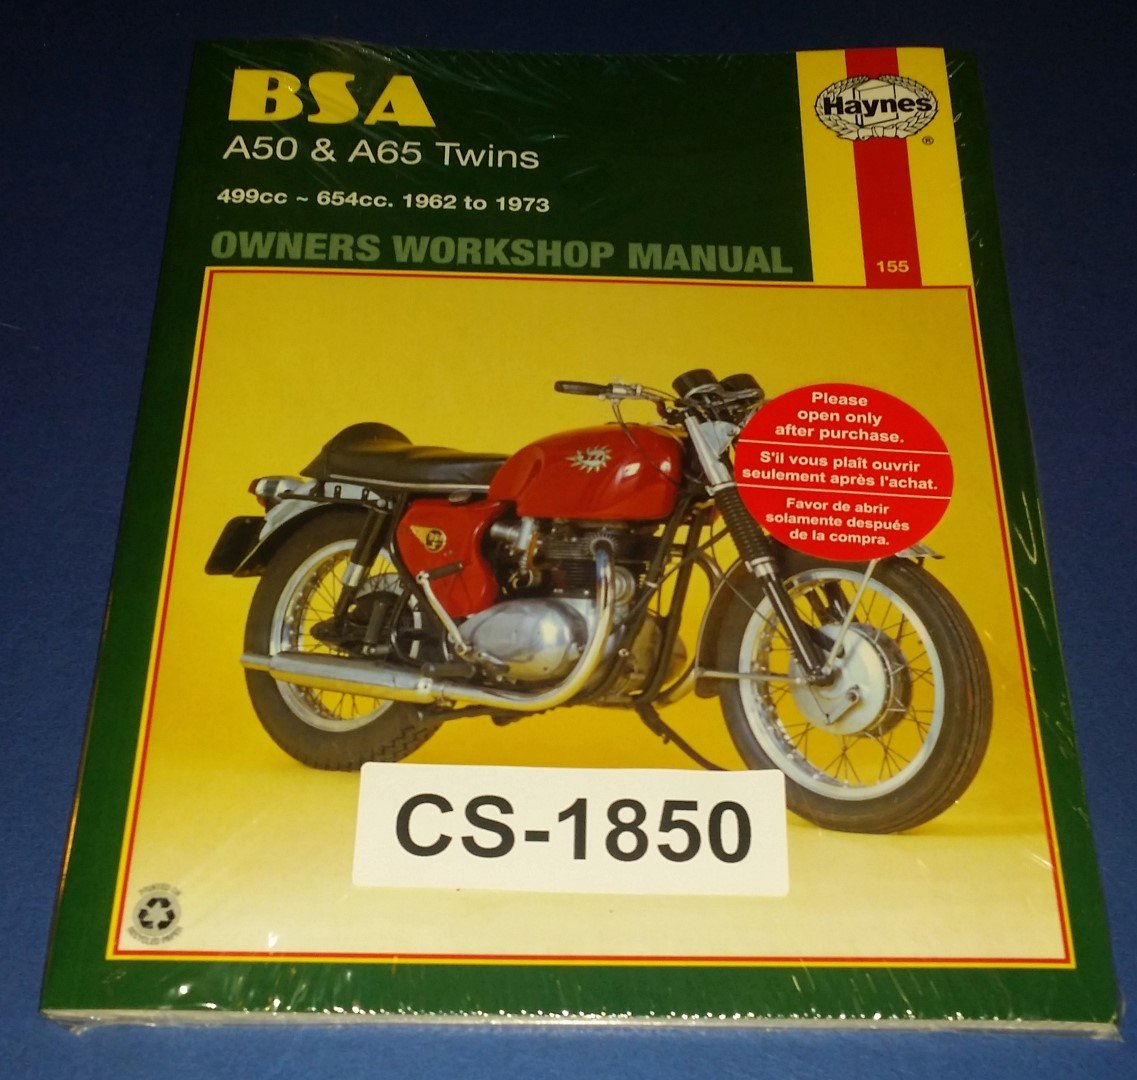 BSA A50 & A65 Owners Workshop Manual ...